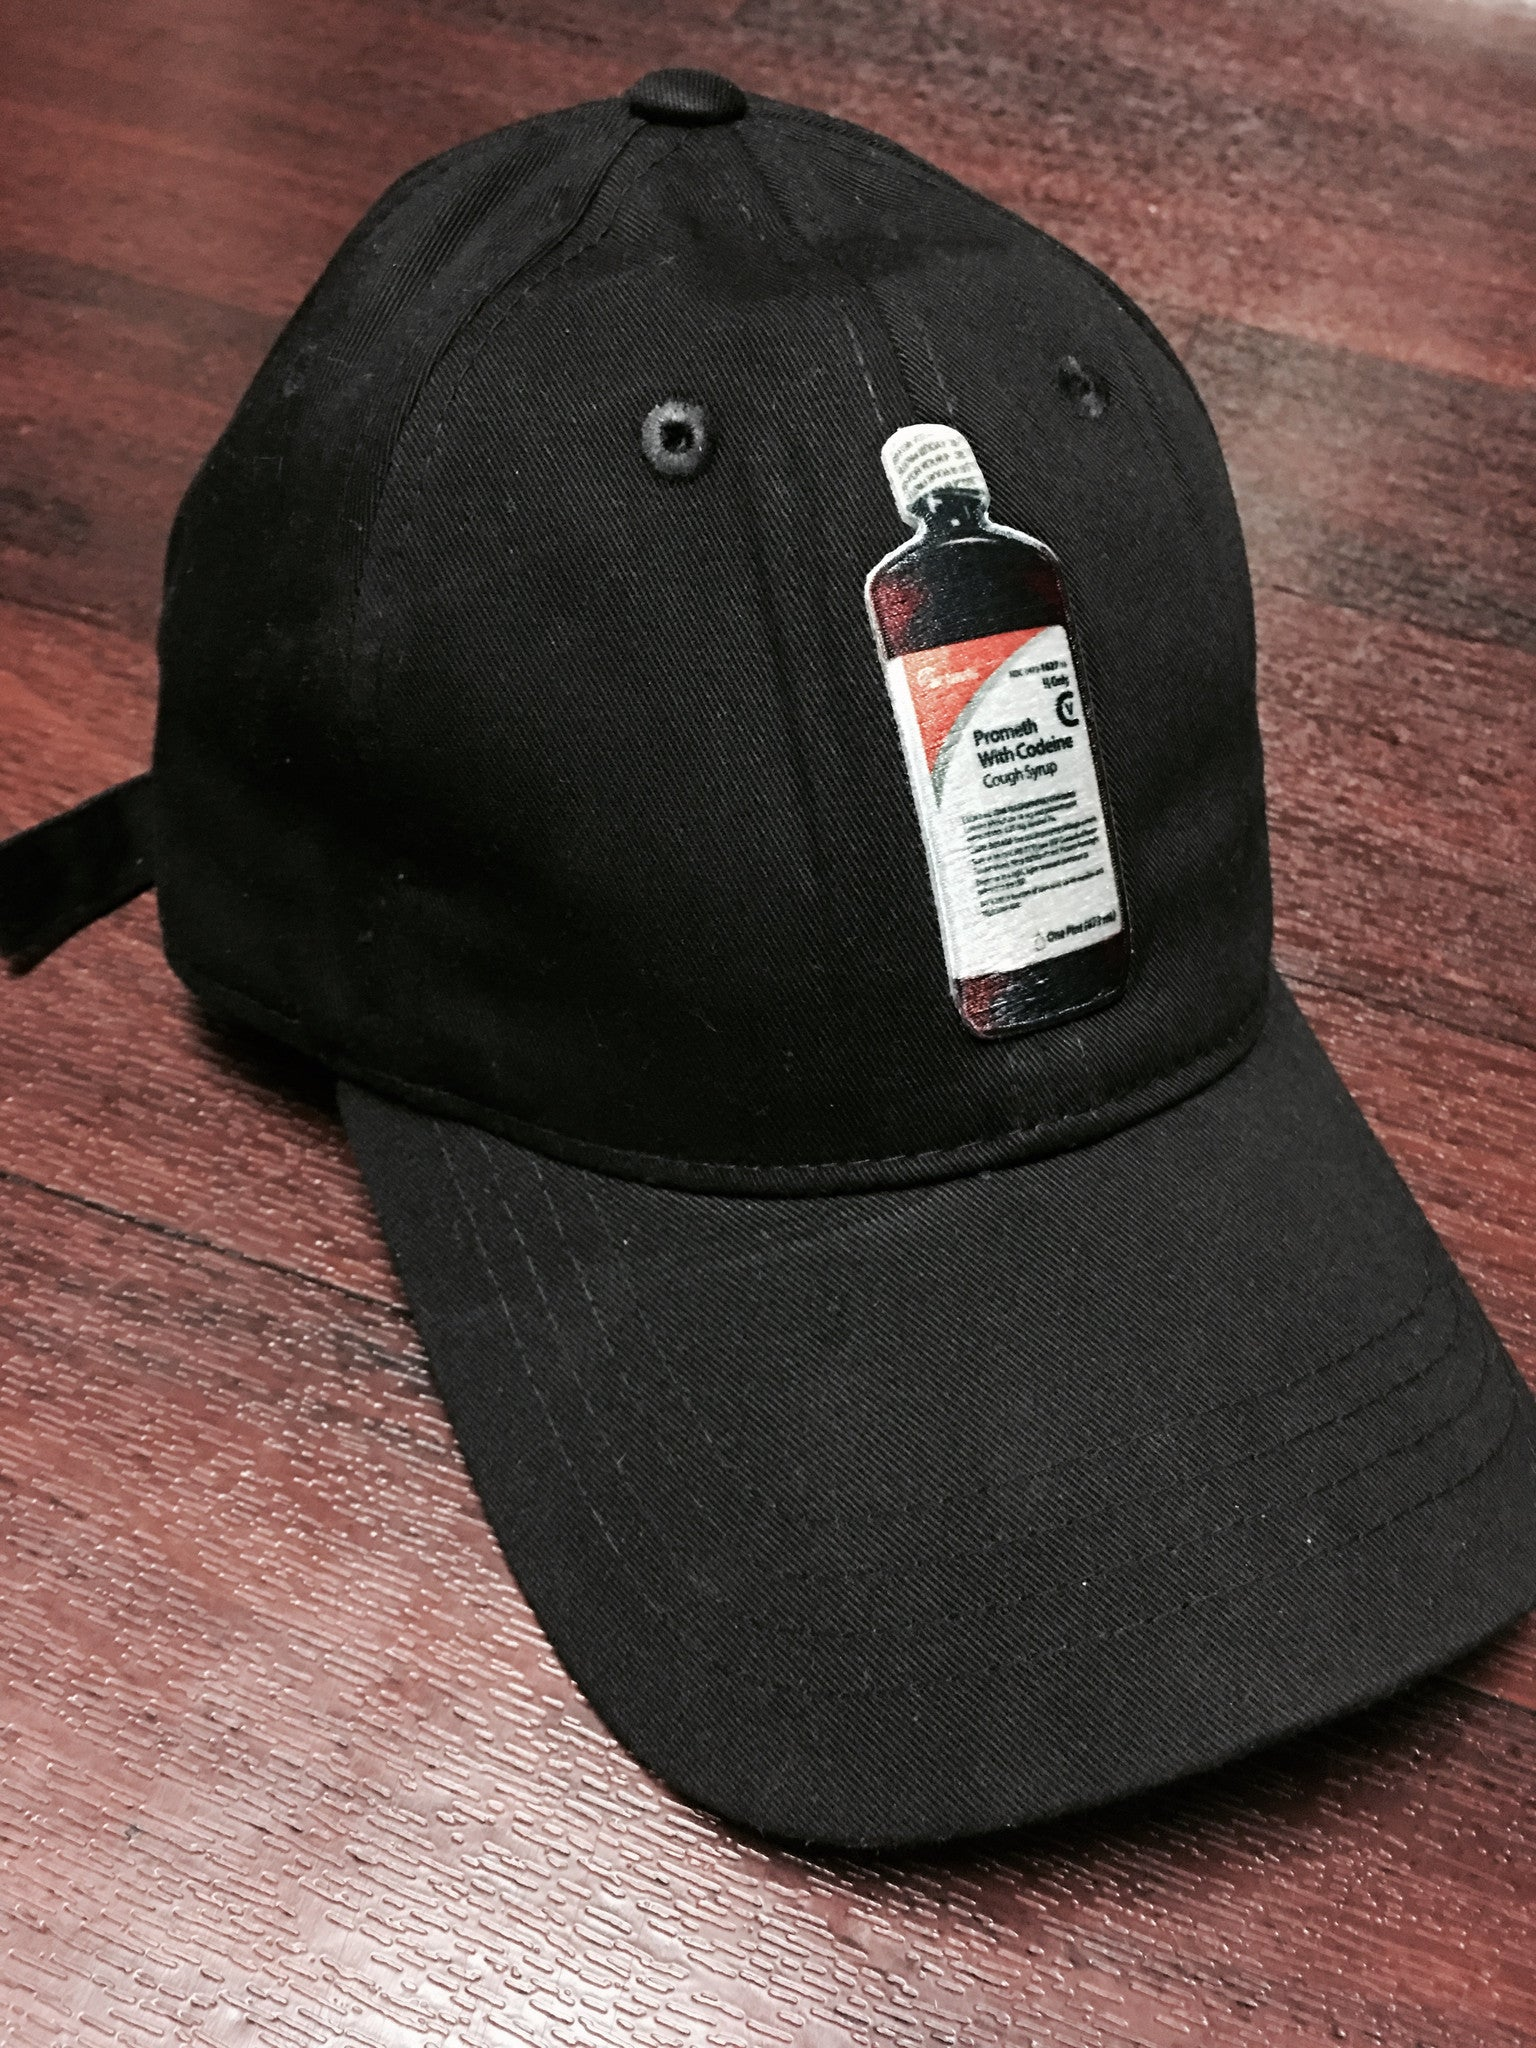 New actavis pint dad hat